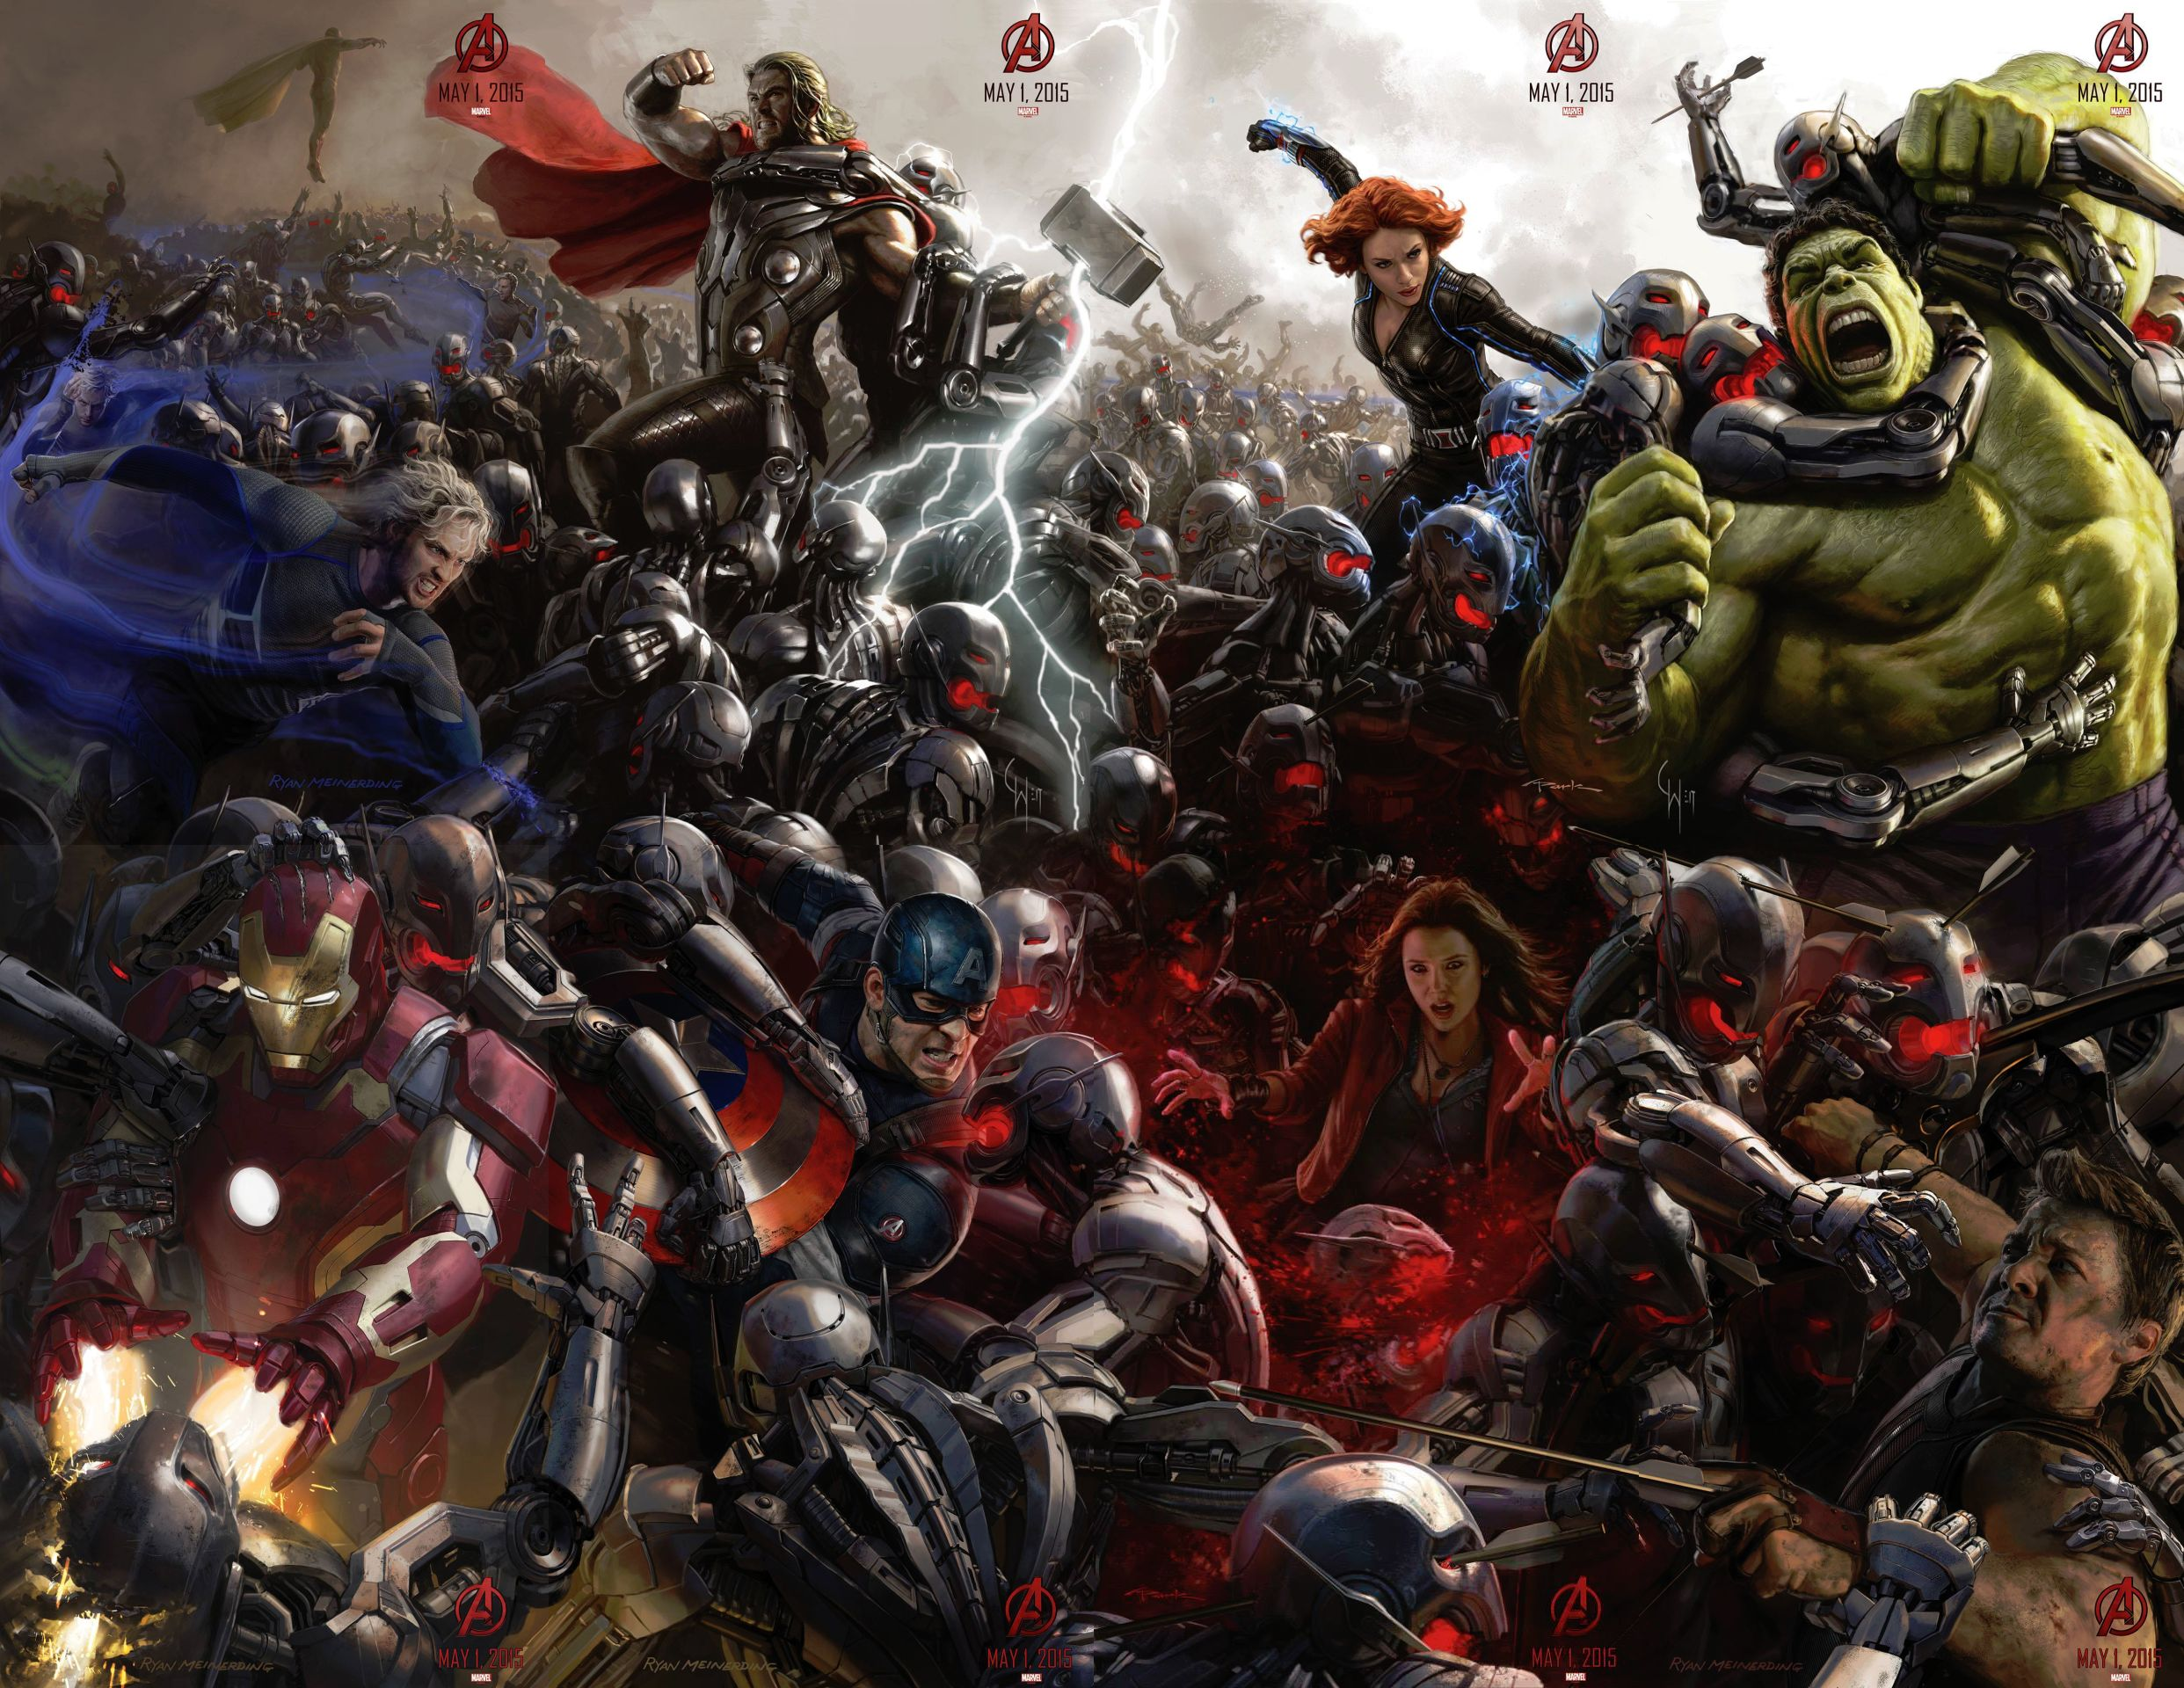 Avengers Age of Ultron full character poster - www.scifiempire.net